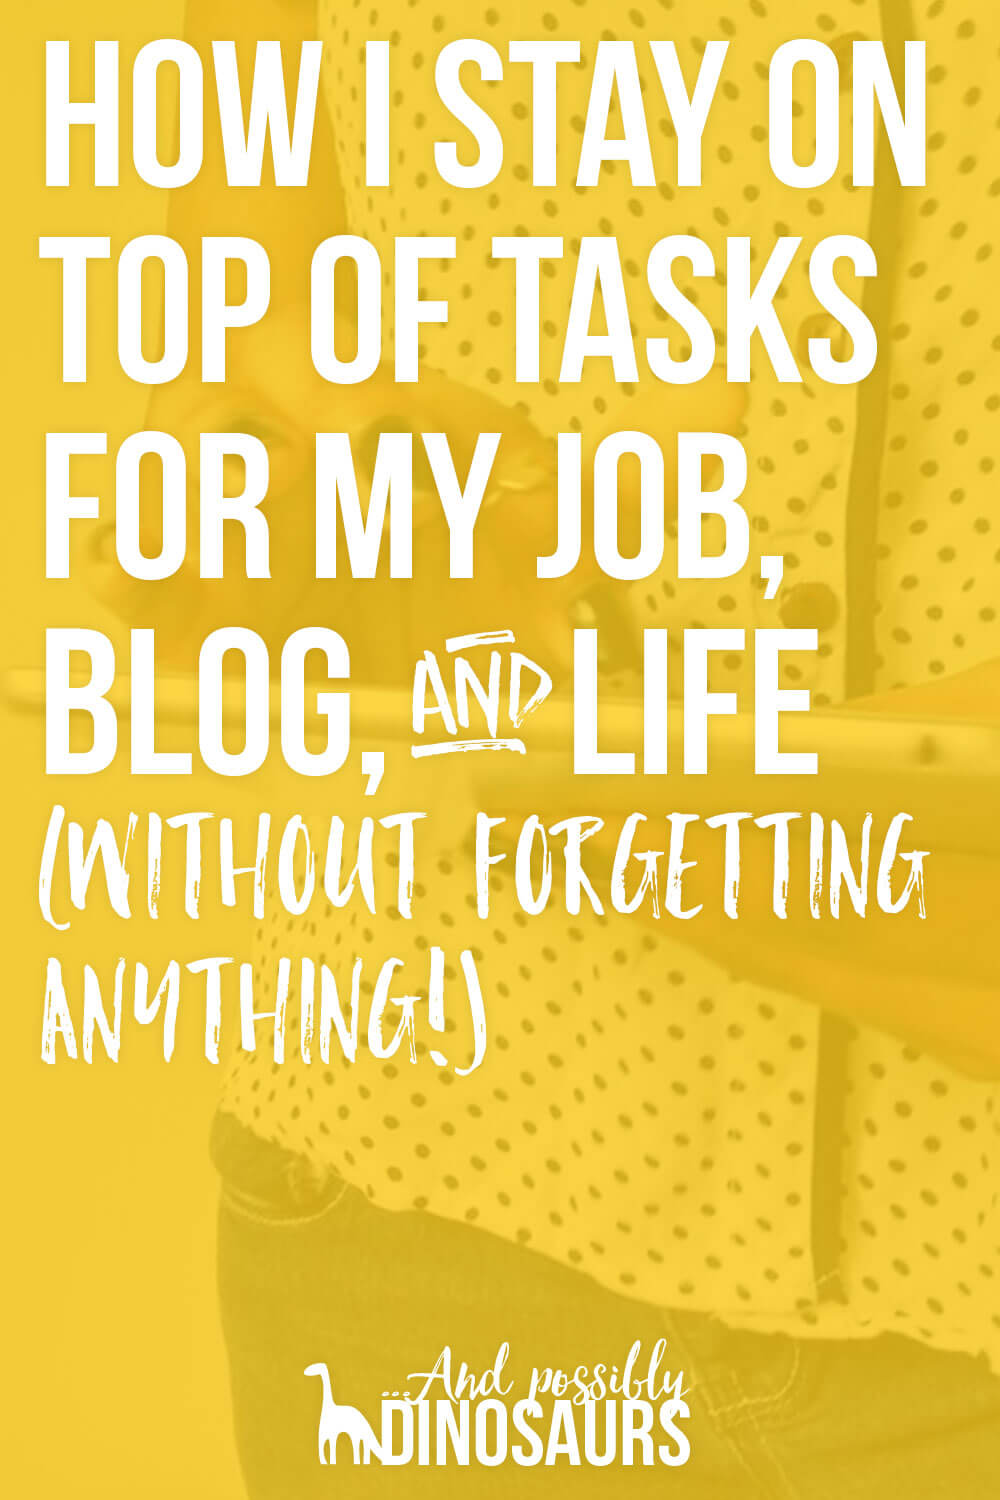 It can be really tough to juggle a blog, a job, and, you know... a life. But it's possible! Here's the organization system I use to stay on top of tasks for everything in my life--without letting anything slip through the cracks!